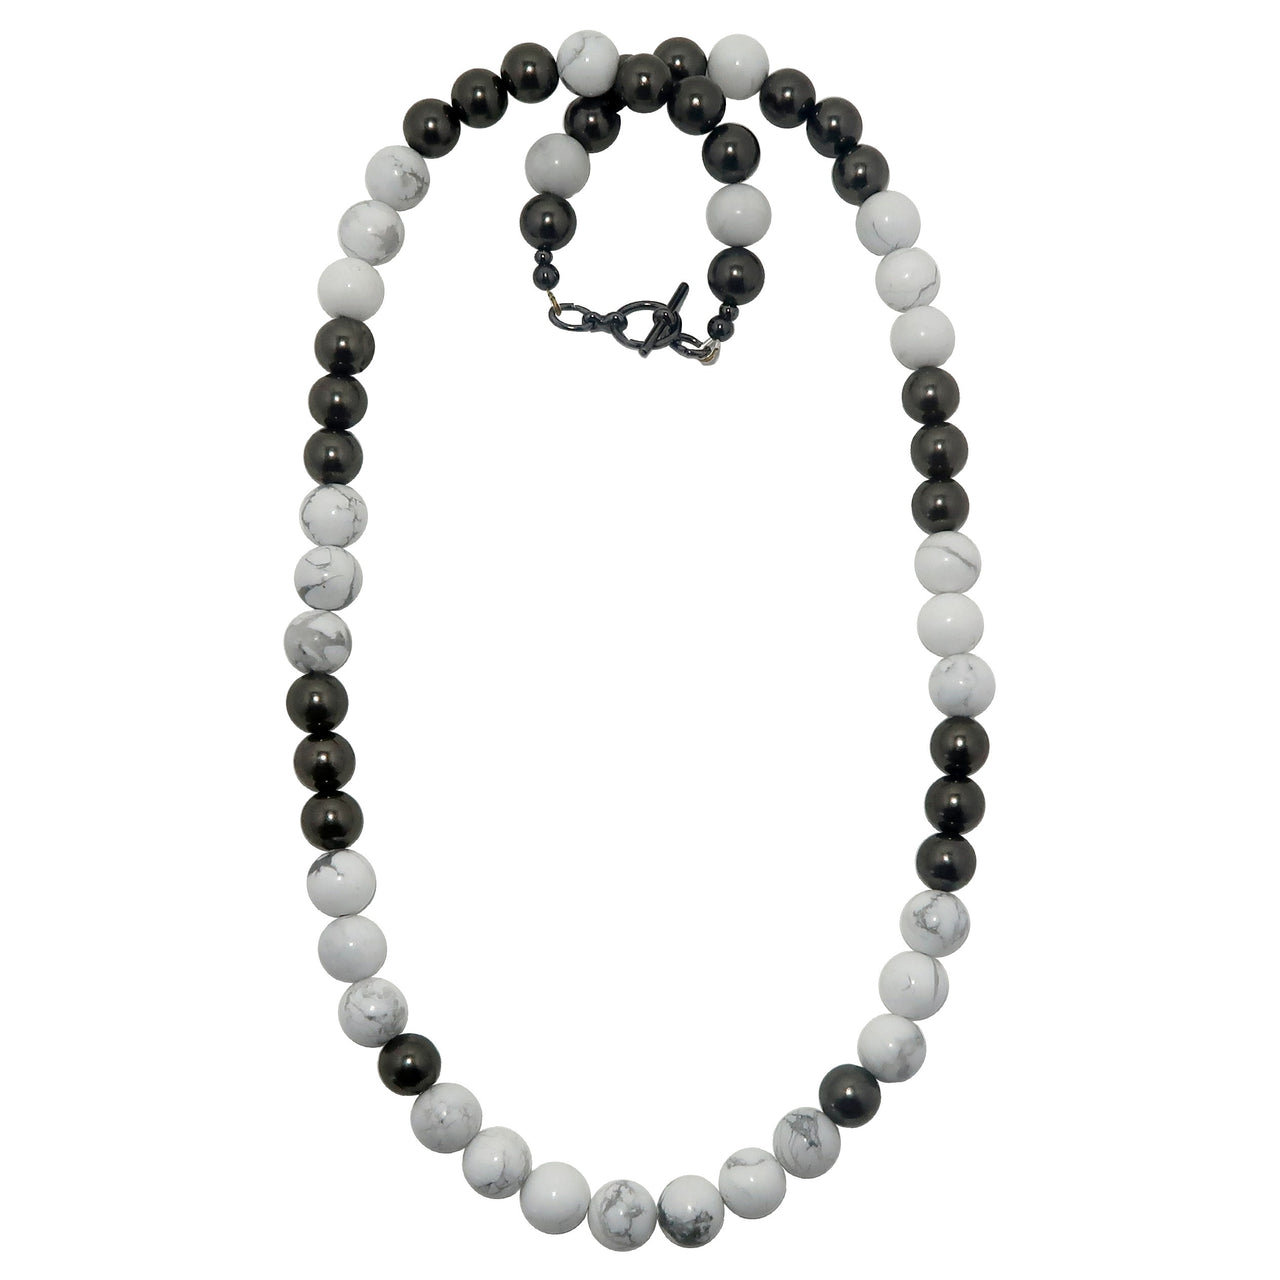 Howlite Necklace Boutique Chunky Beaded Stone White Round Shiny Black Gunmetal B03